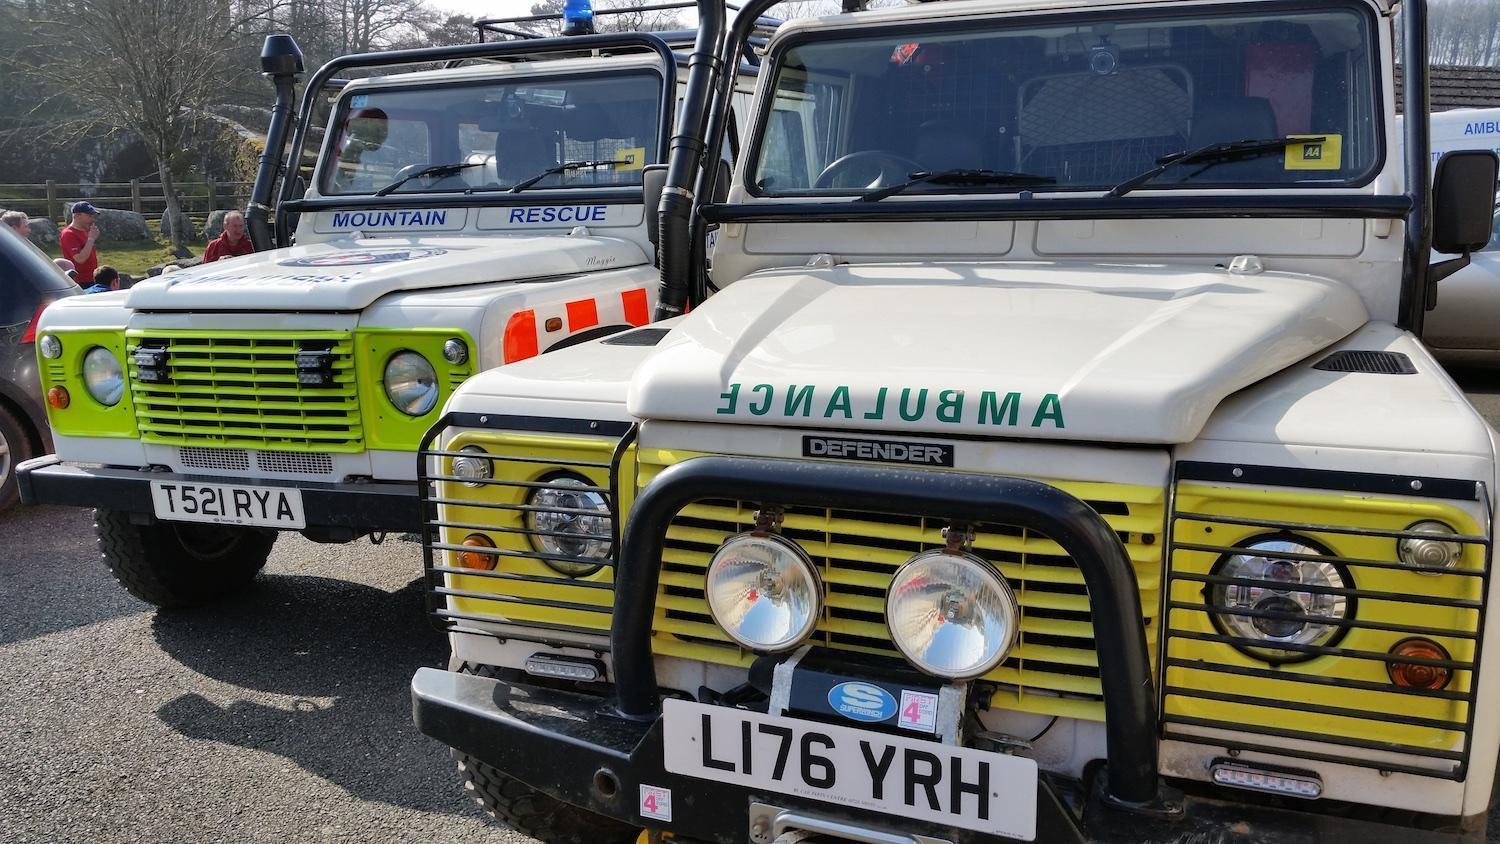 Dartmoor Search and Rescue Ashburton 2 Landrover ambulances. DART52 and DART62